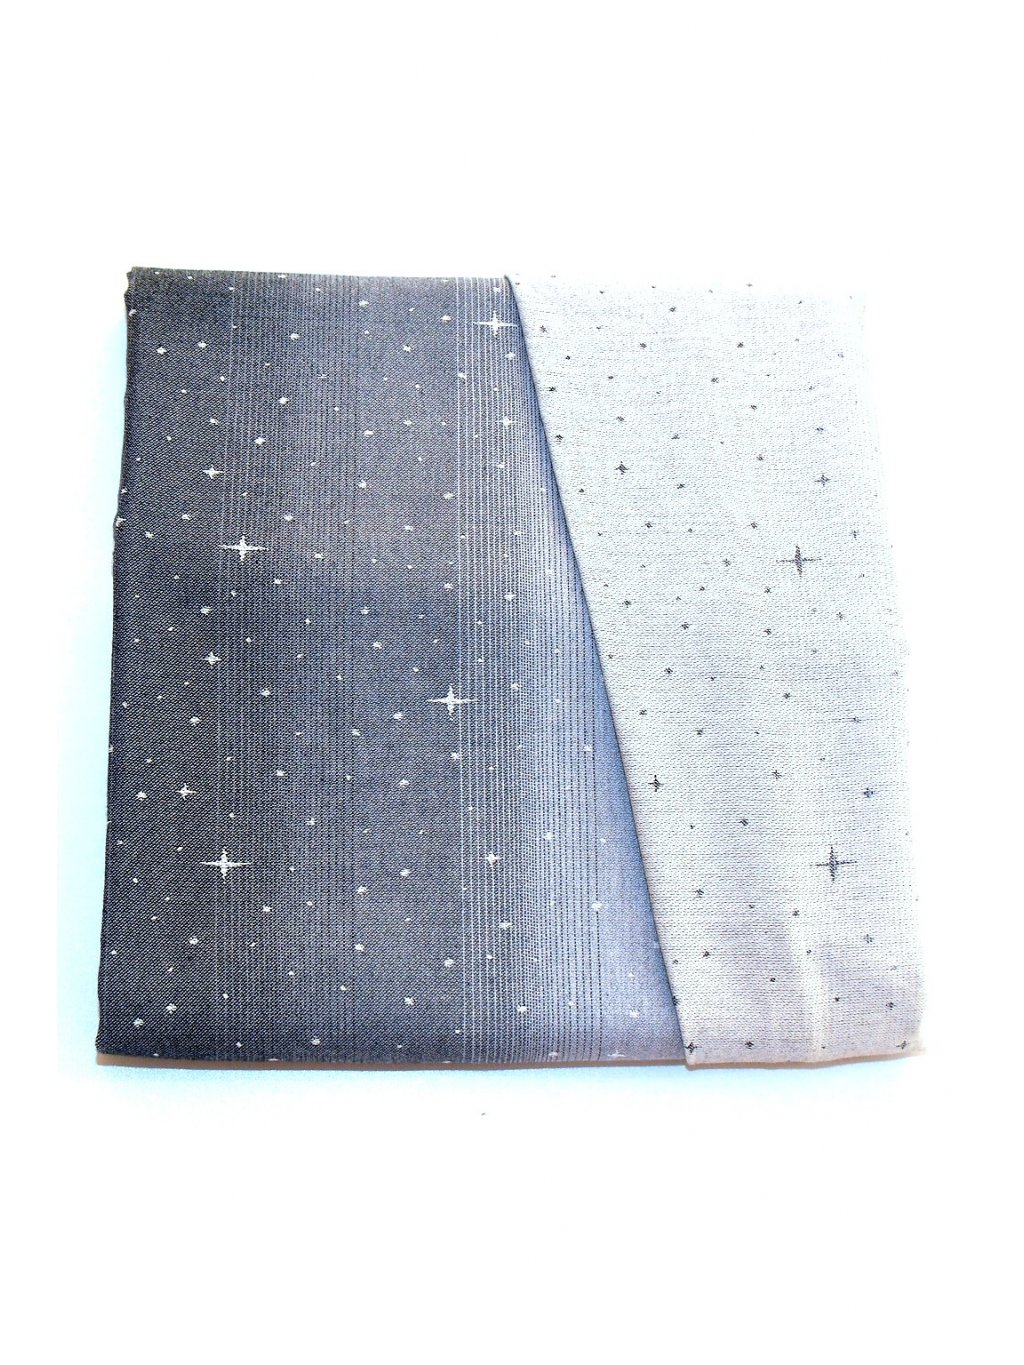 Baby Wrap MoniLu Perseids Milkyway